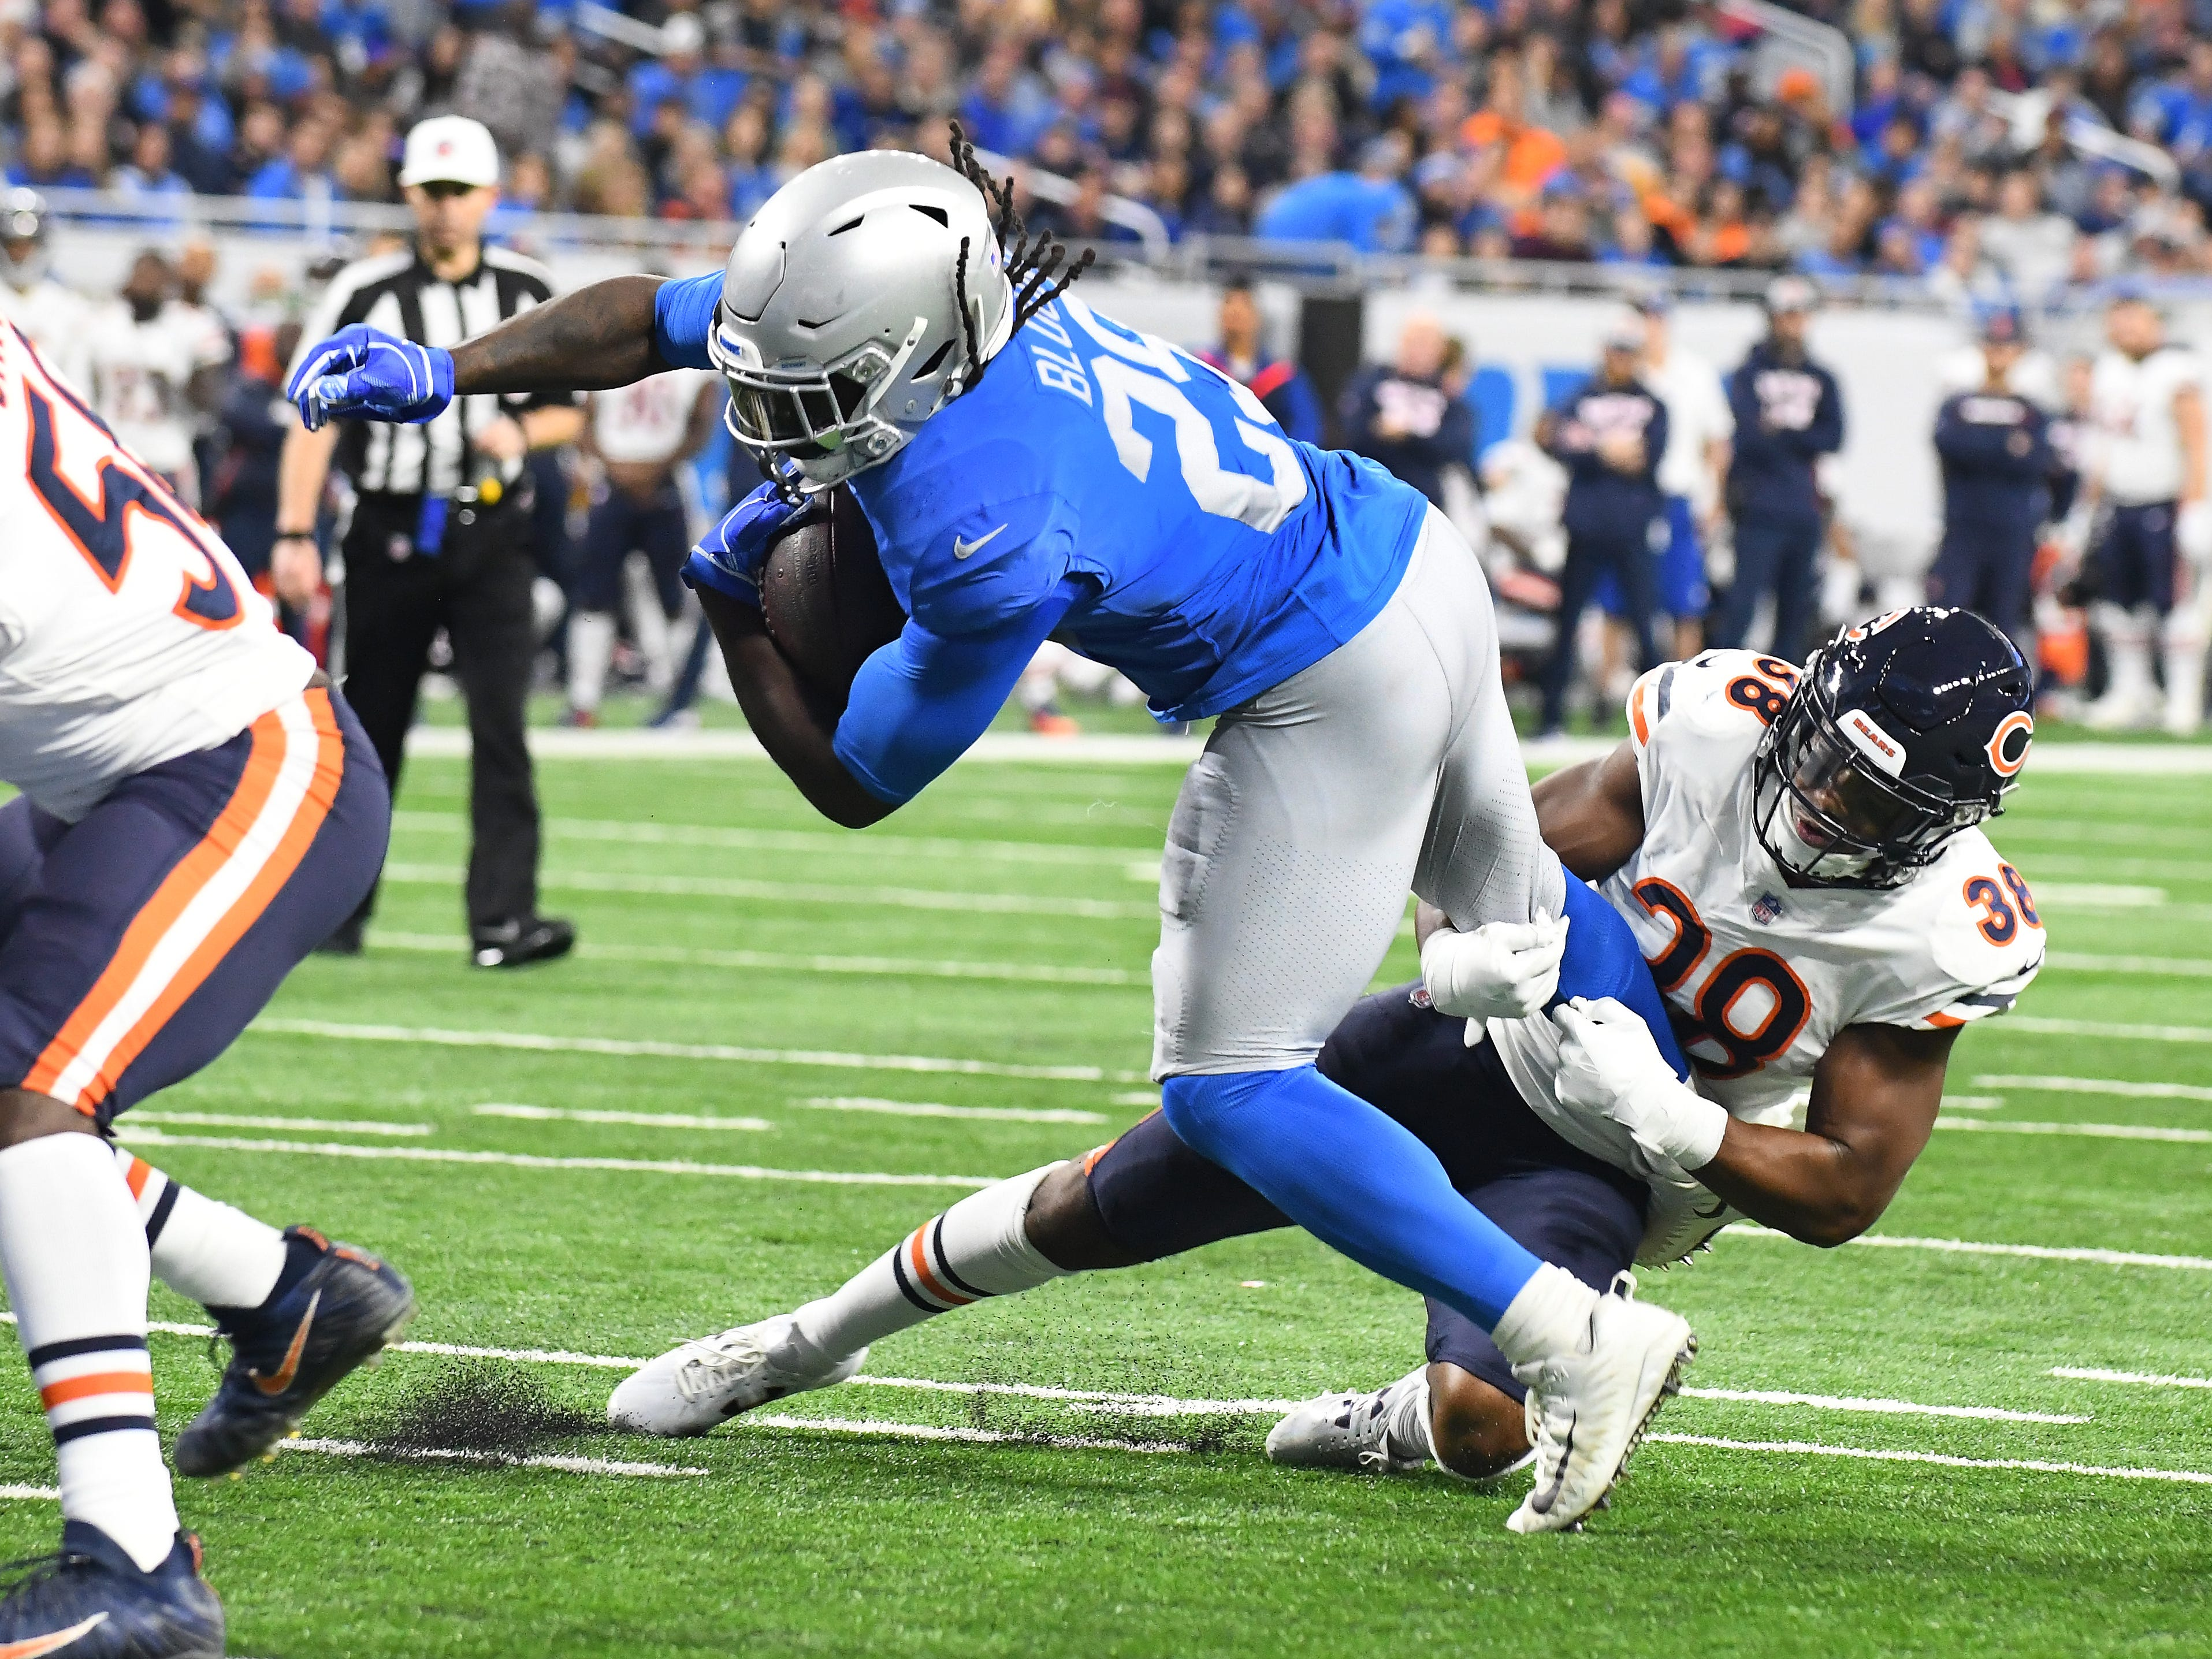 Despite Bears' Adrian Amos Jr. all over Lions running back LeGarrett Blount, Blount charges into the end zone for a touchdown  in the second quarter.